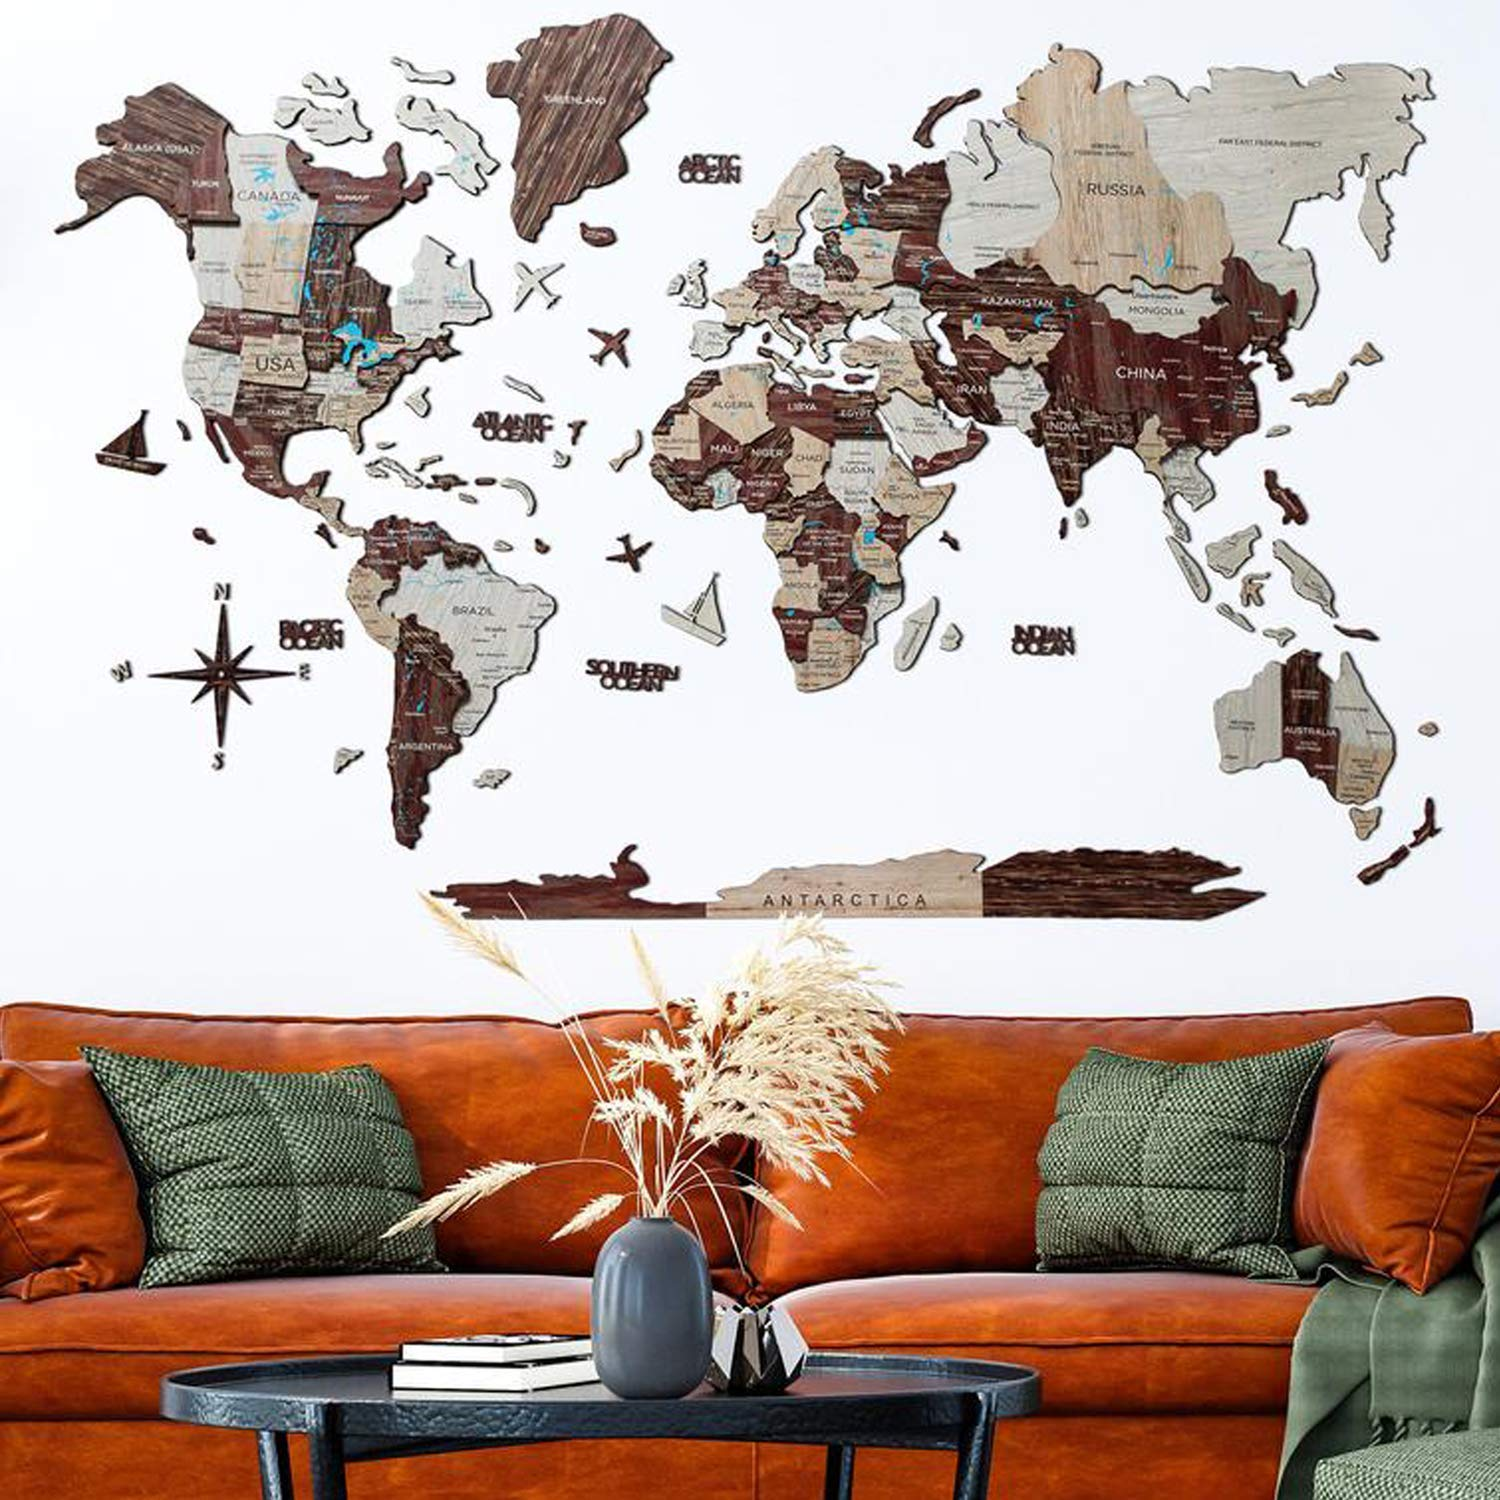 Home Decor 3D Wood World Map CAPPUCCINO color Wall Art. Large Wall Decor - World Travel Map All Sizes (M,L,XL,XXL). Any Occasion Gift Idea - Wall Art For Home & Kitchen or Office